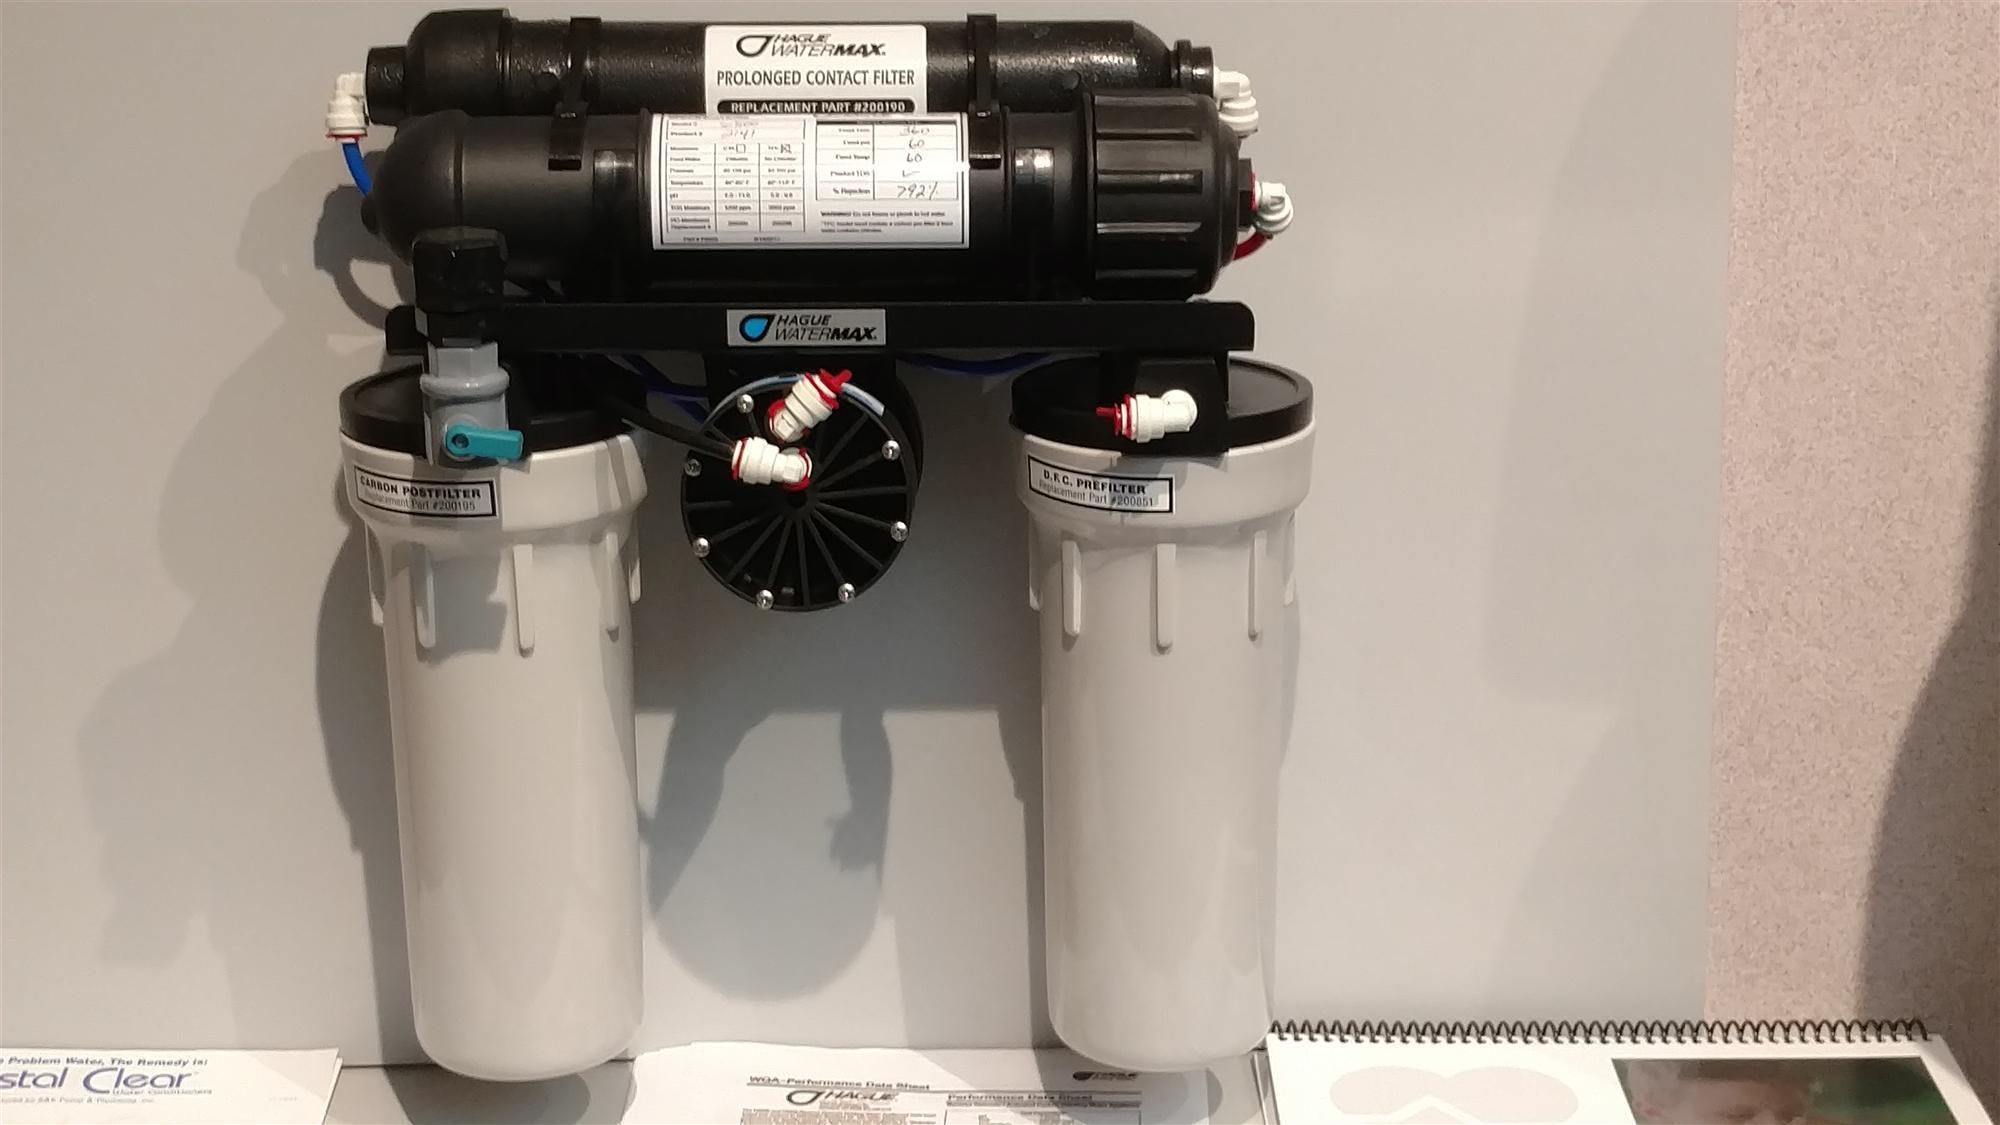 Hague Water Max Filter